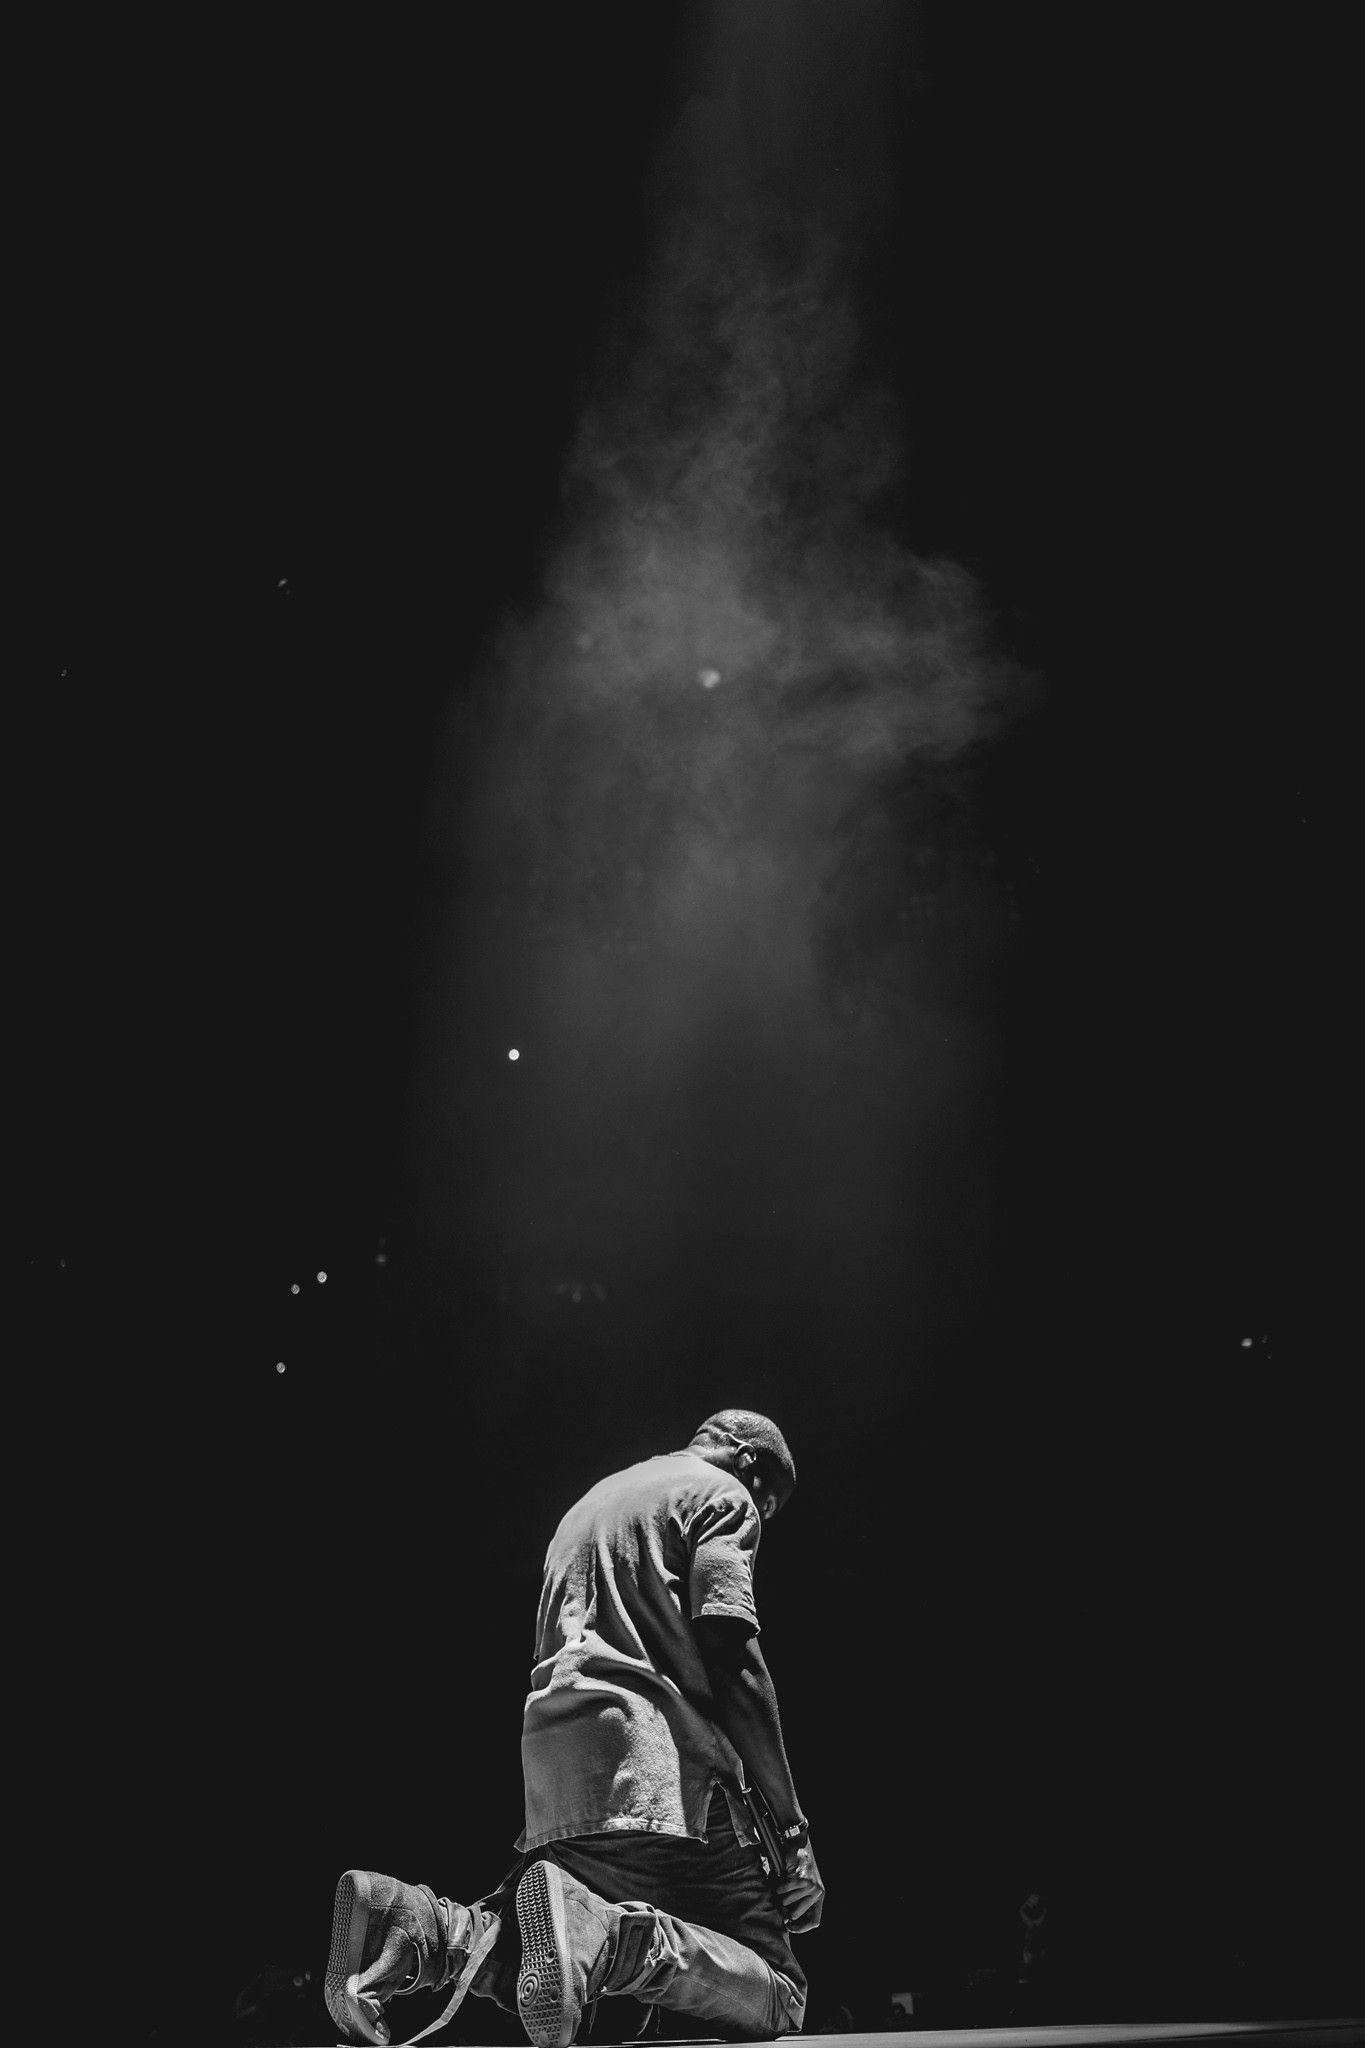 Kanye Iphone Wallpapers Top Free Kanye Iphone Backgrounds